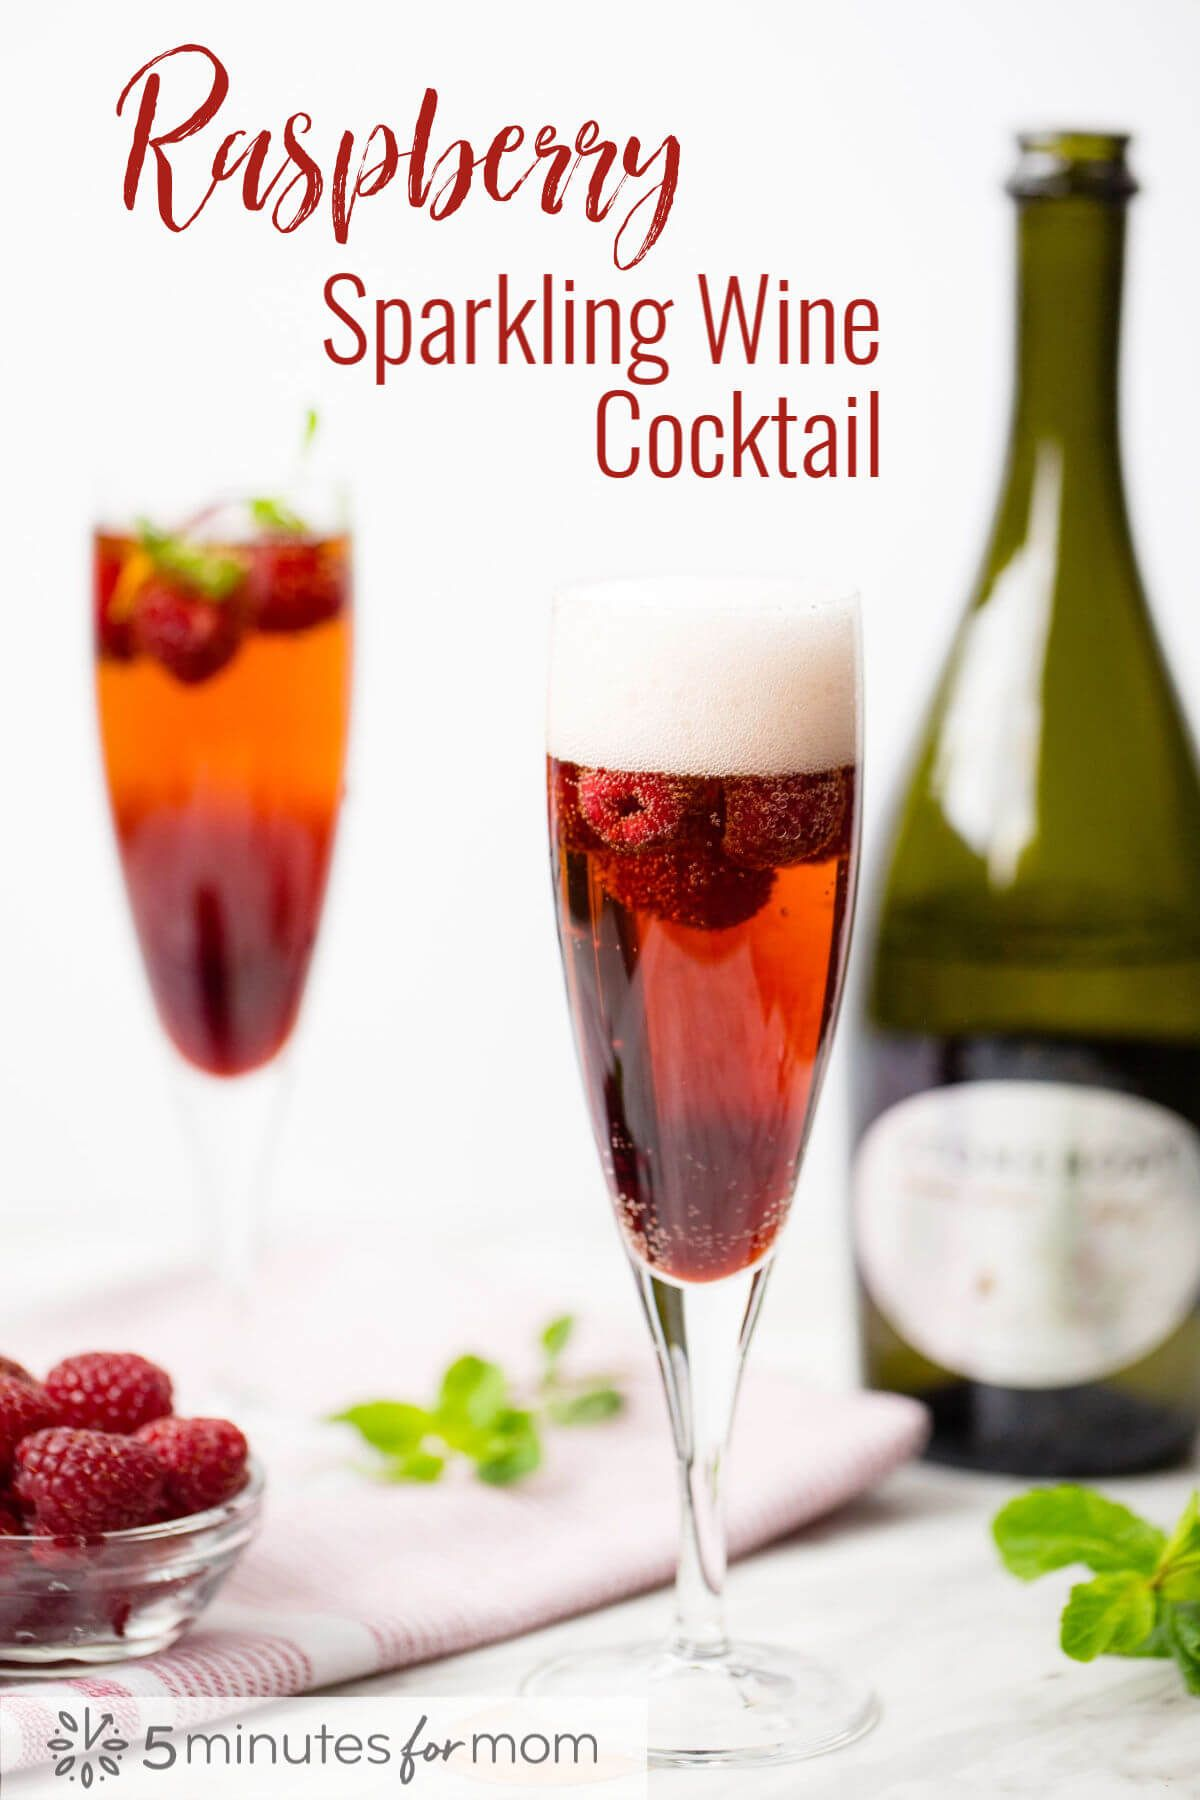 Raspberry Sparkling Wine Cocktail How To Make A Delicious And Stunning Raspberry Sparkling Wine Cockta Sparkling Wine Cocktails Sparkling Wine Wine Cocktails